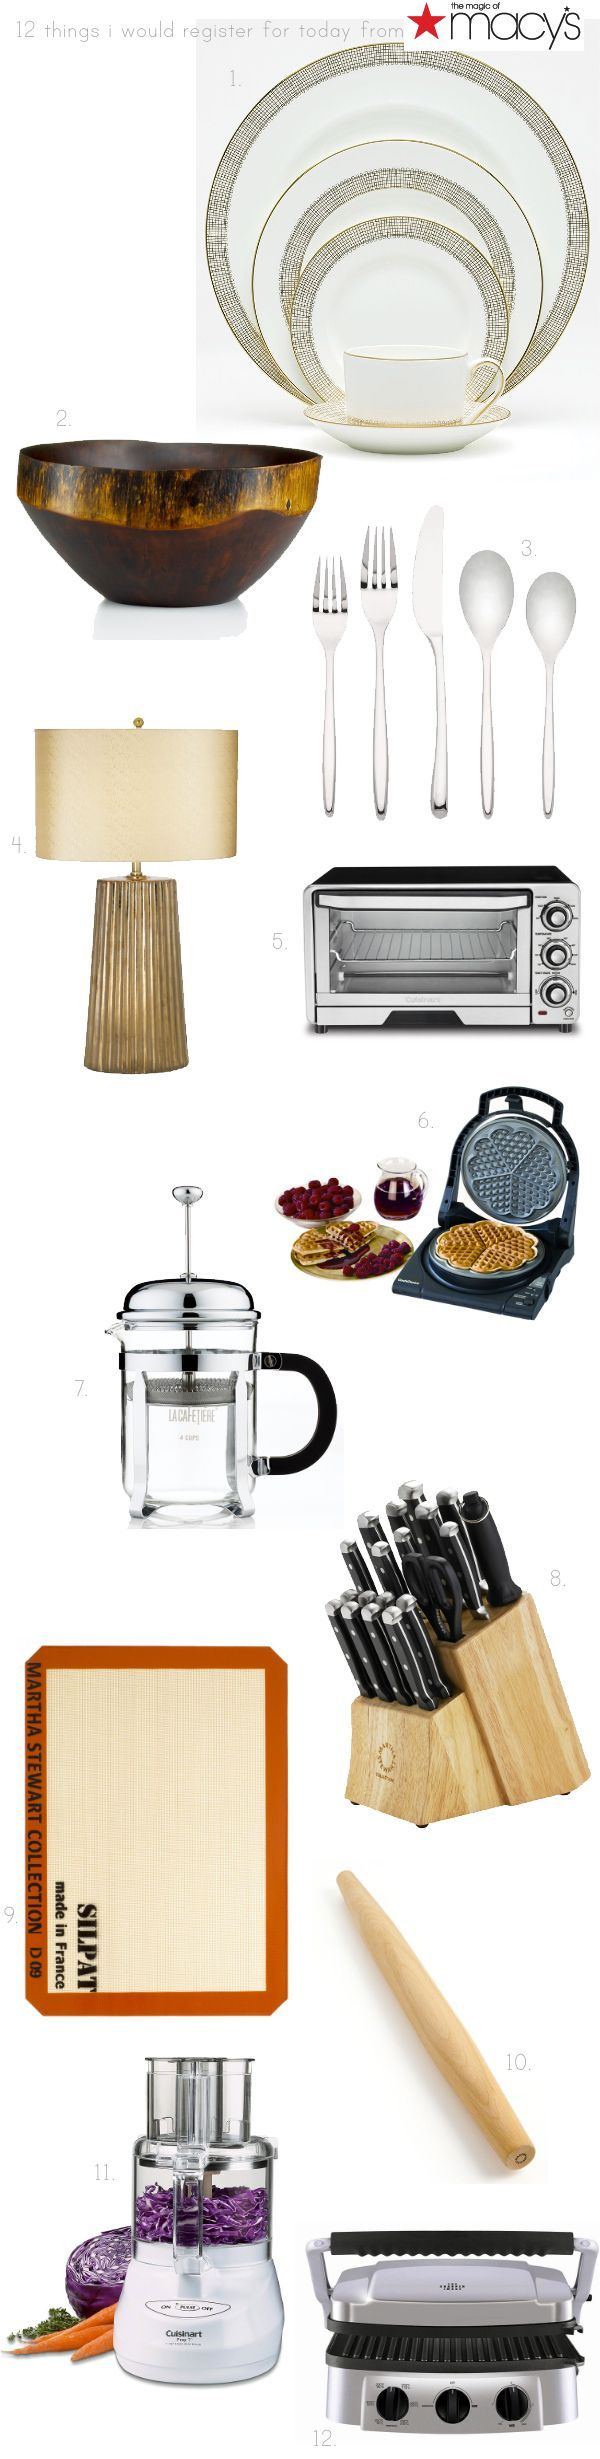 Macy's Wedding Registry Giveaway